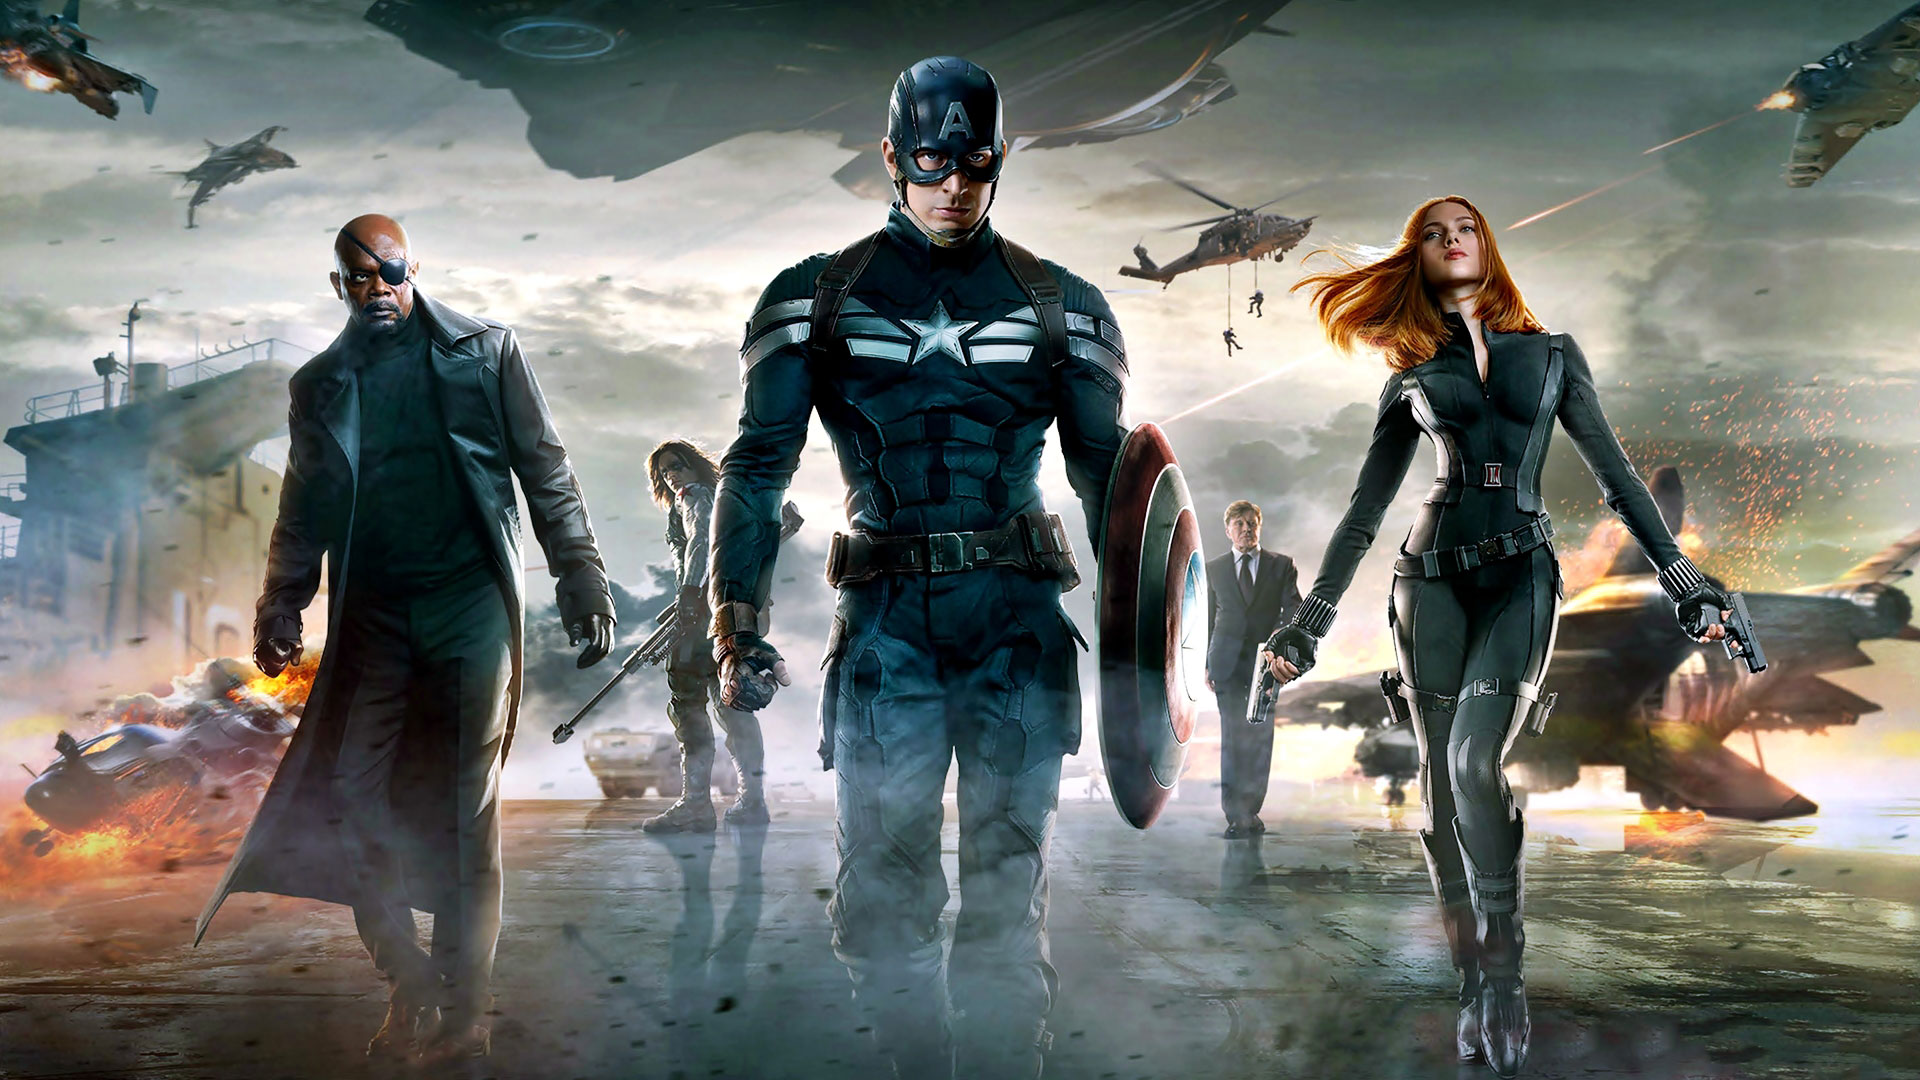 Captain America: The Winter Soldier Full Movie Online